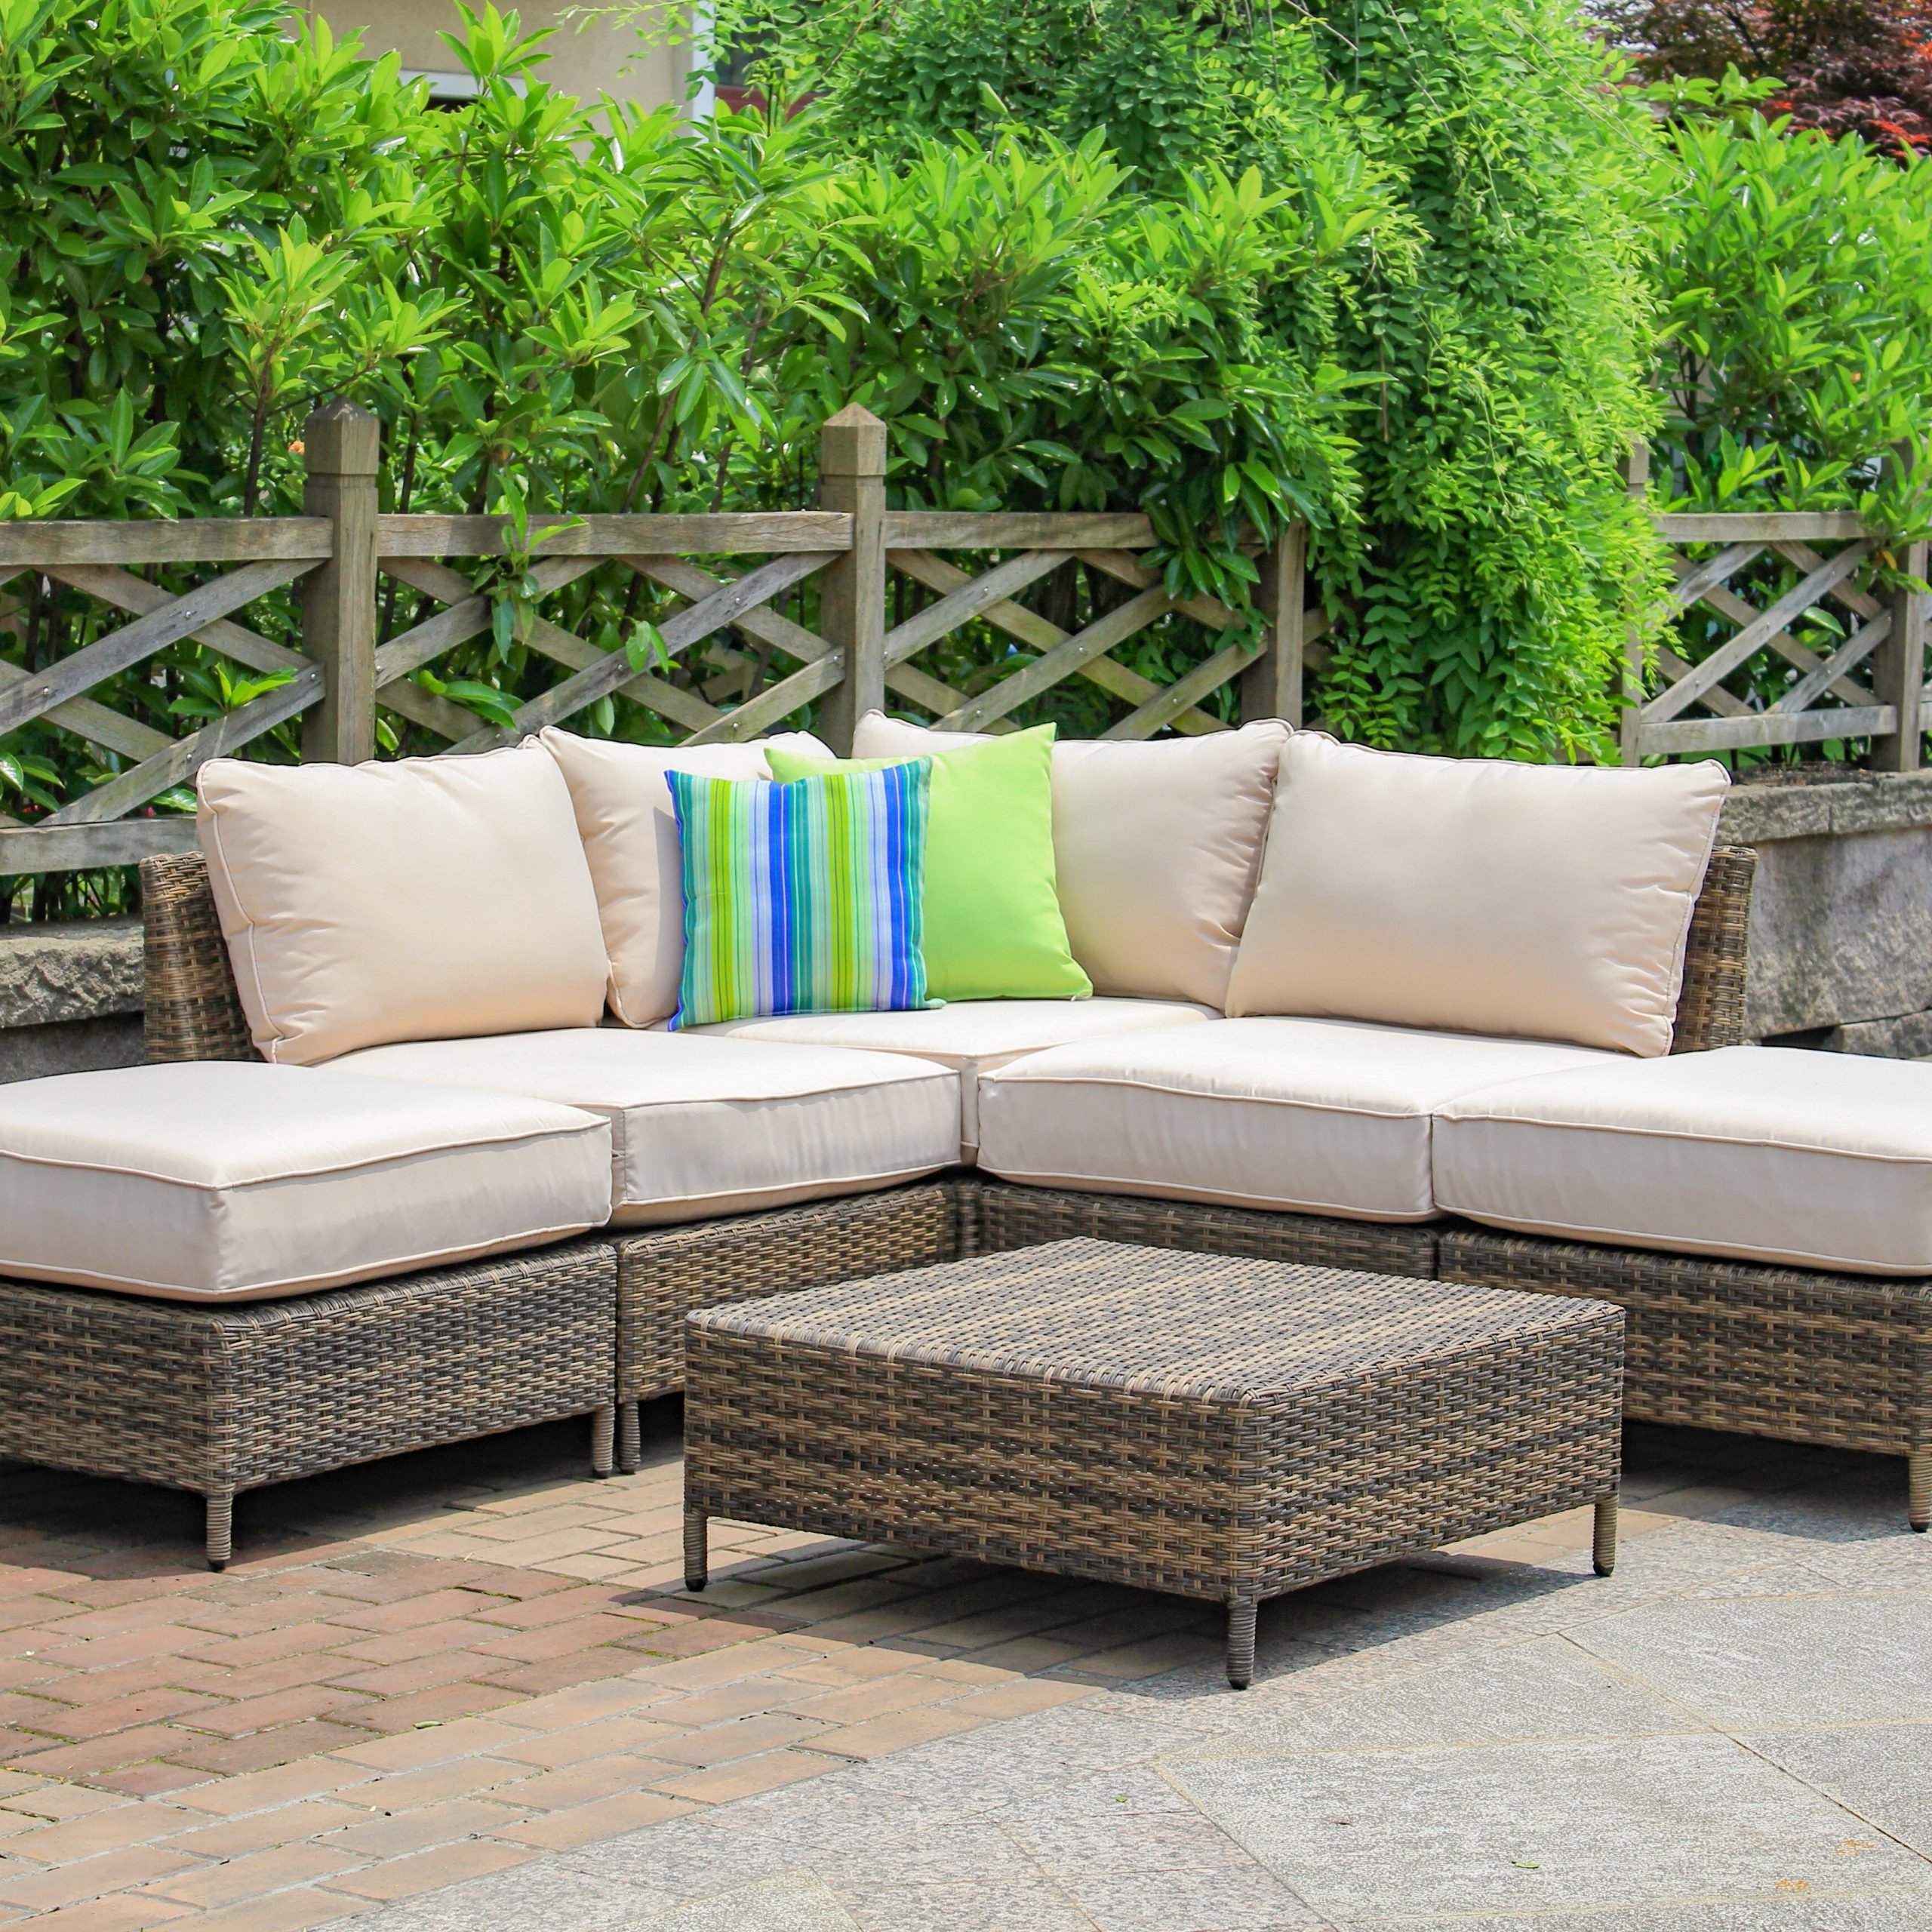 Best And Newest Sophie 6 Piece Sectional Seating Group With Cushions With Letona Patio Sectionals With Cushions (View 20 of 25)